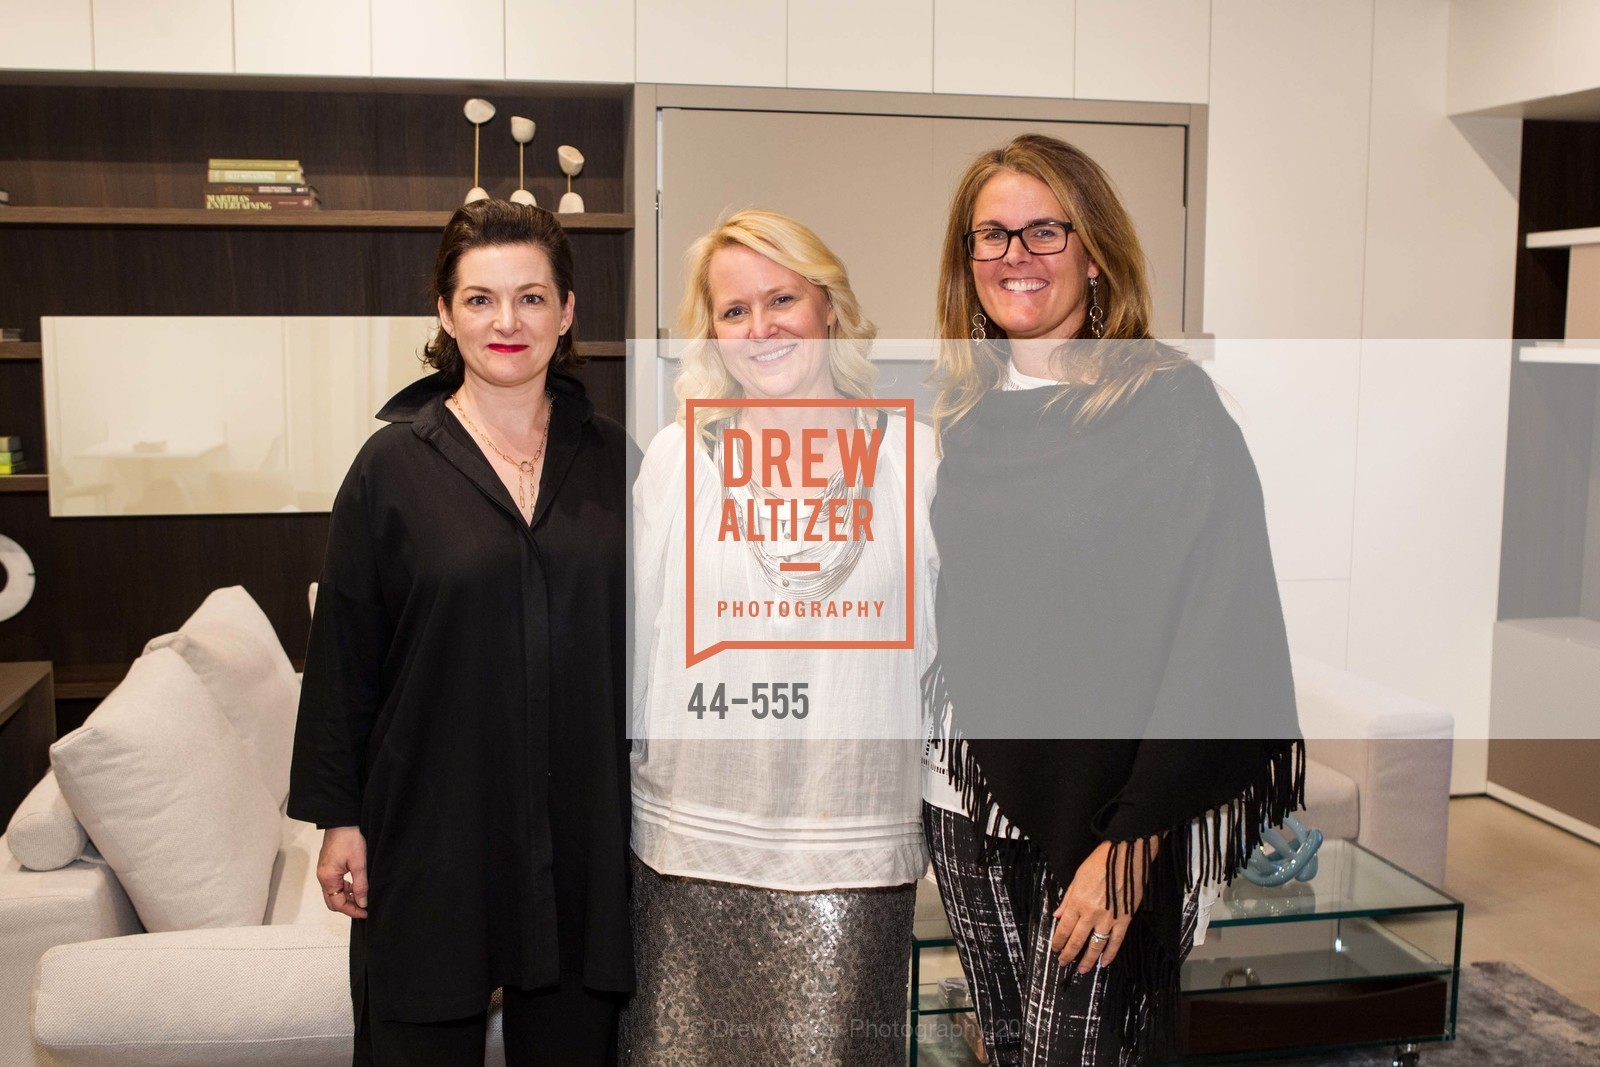 Alisa Carroll, Lisa Blecker, DeForest Wayne, SFC&G Real Estate Survey Reveal, Resource Furniture, November 19th, 2015,Drew Altizer, Drew Altizer Photography, full-service agency, private events, San Francisco photographer, photographer california